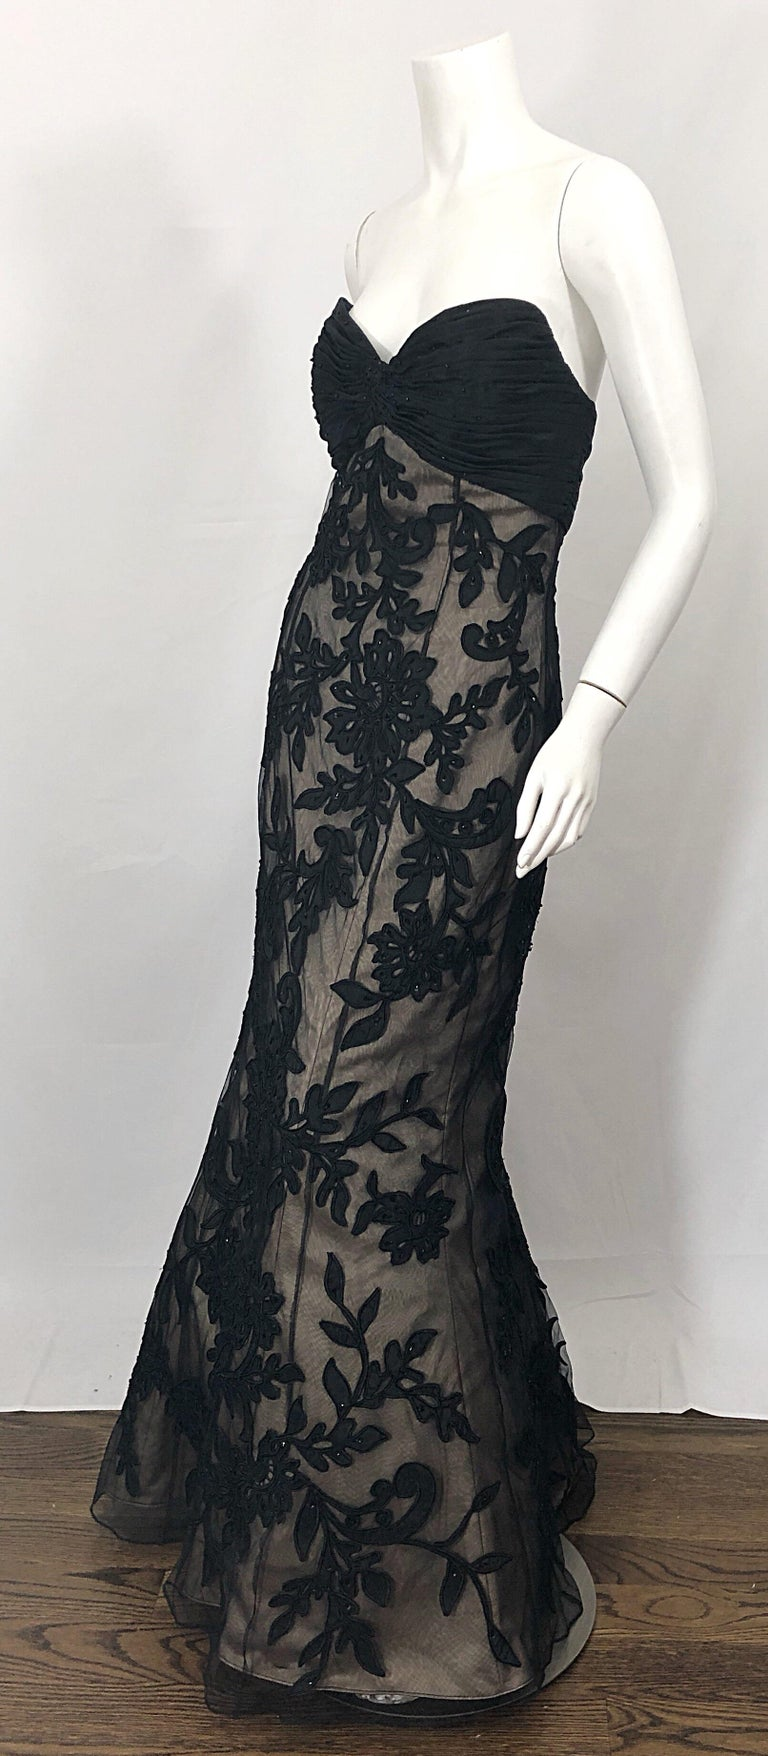 Vintage Bill Blass Couture Size 4 / 6 Black + Nude Beaded Strapless Mermaid Gown For Sale 2